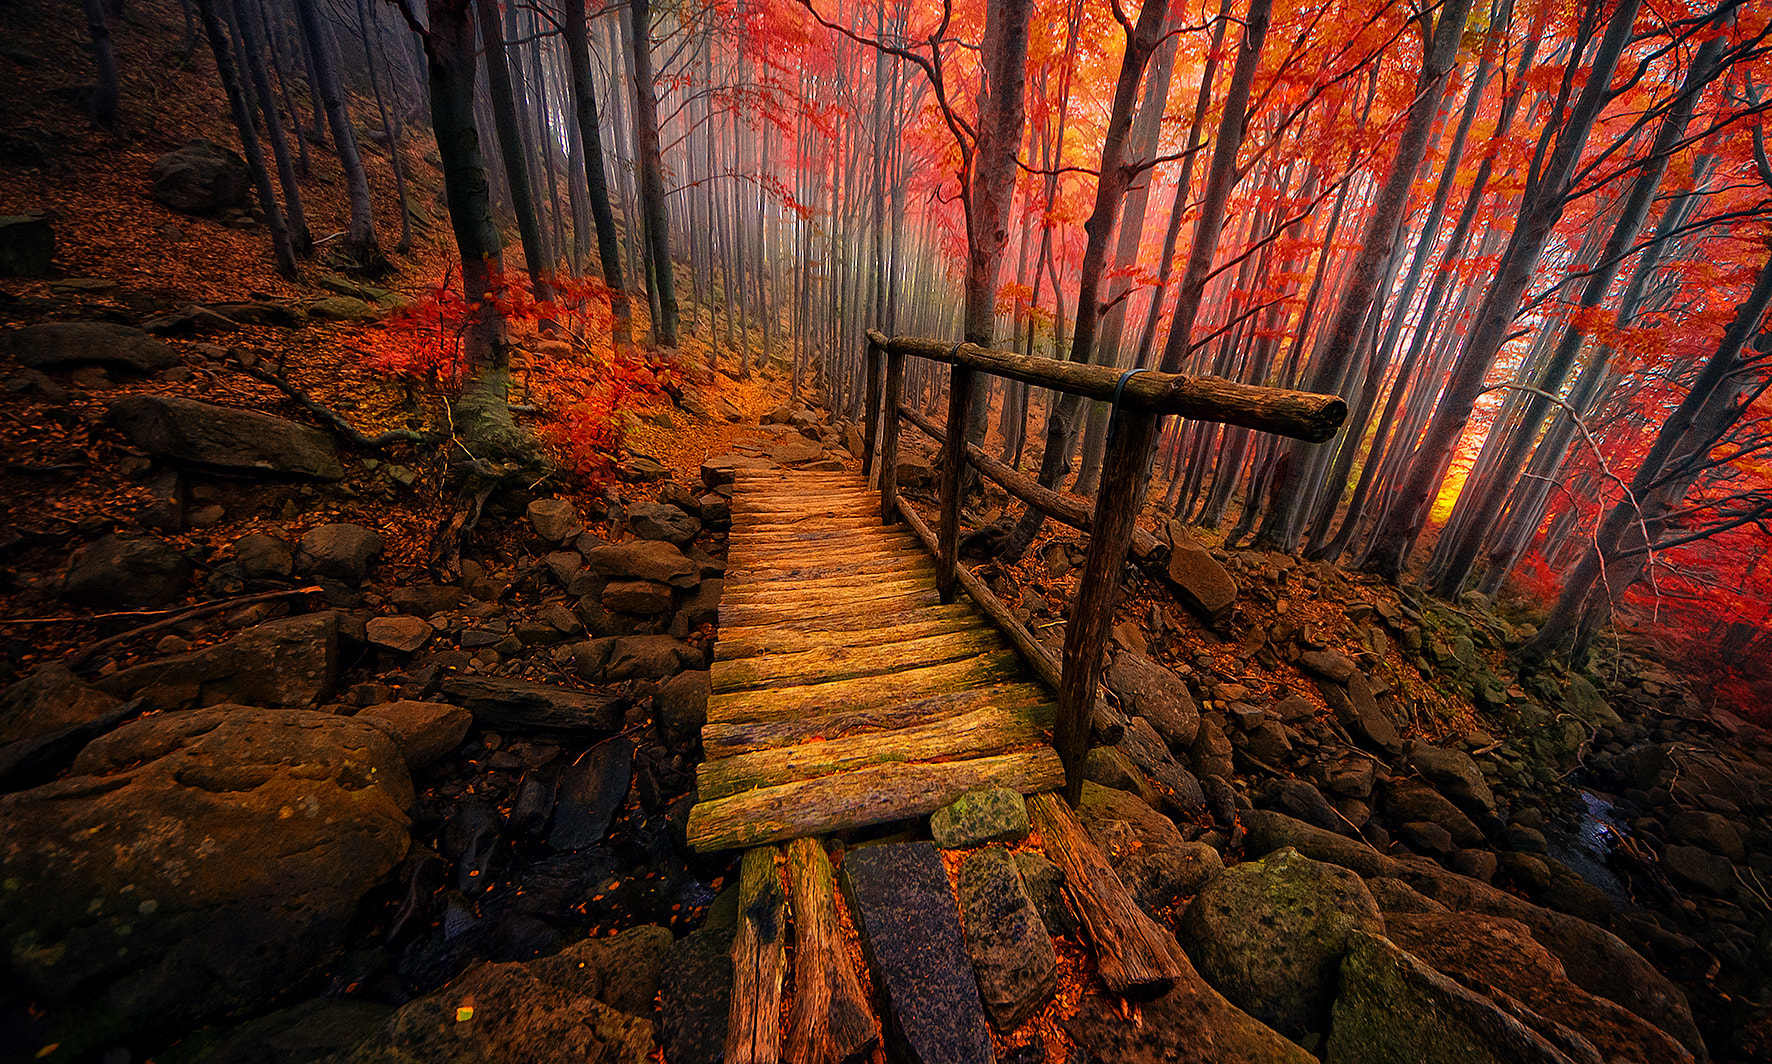 Photograph Autumn by Merca Michael on 500px